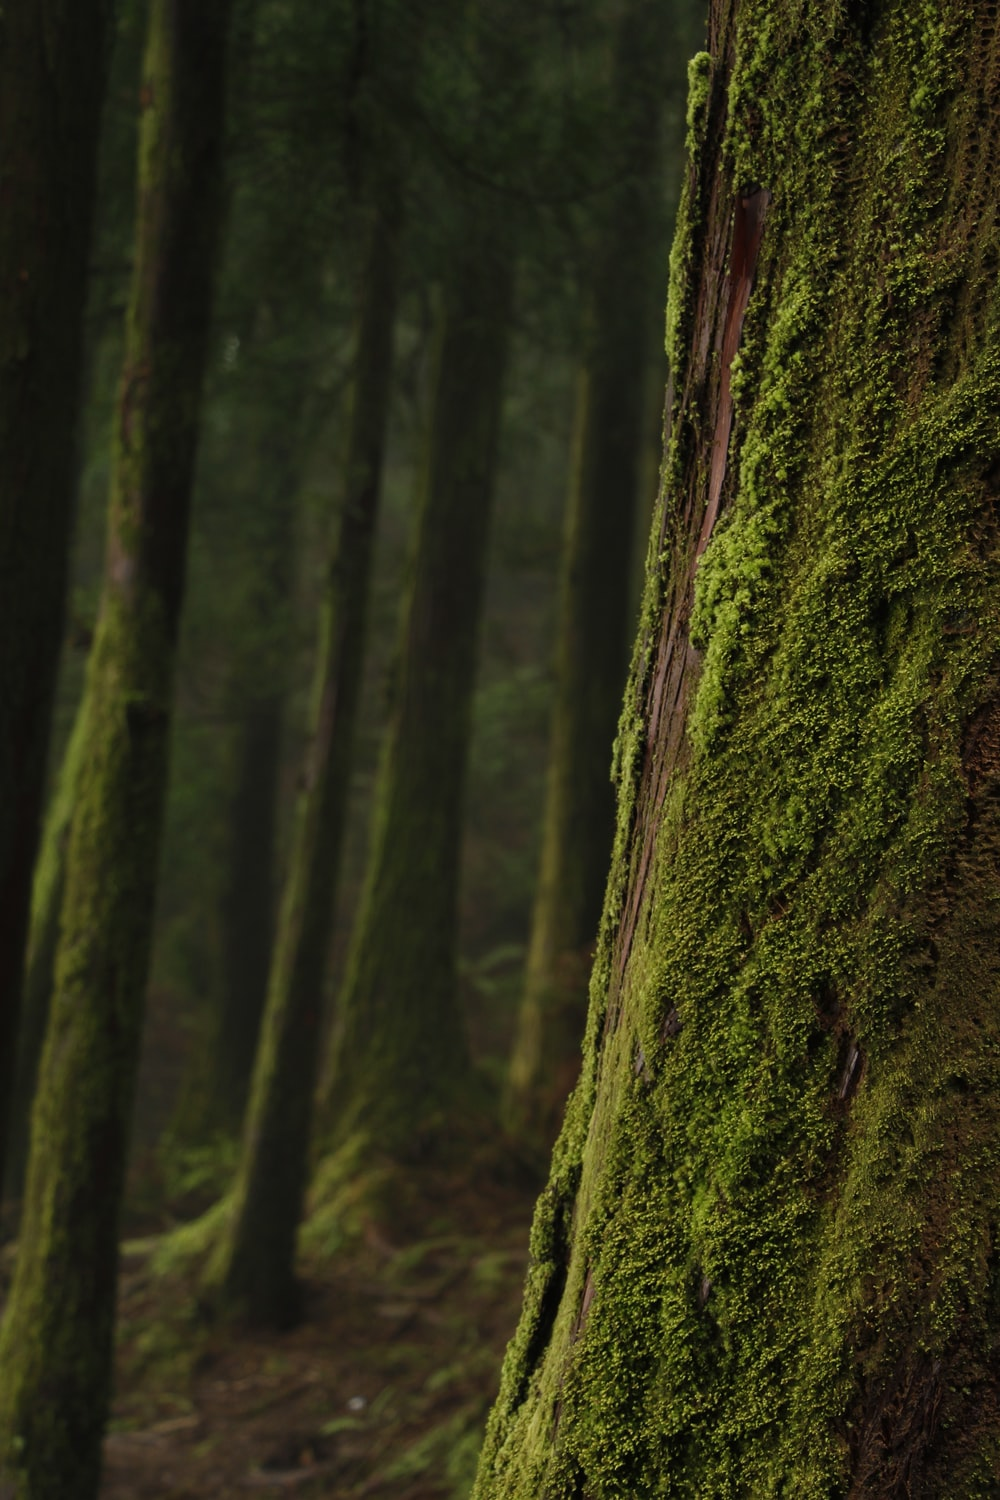 moss on trees in shallow focus photography